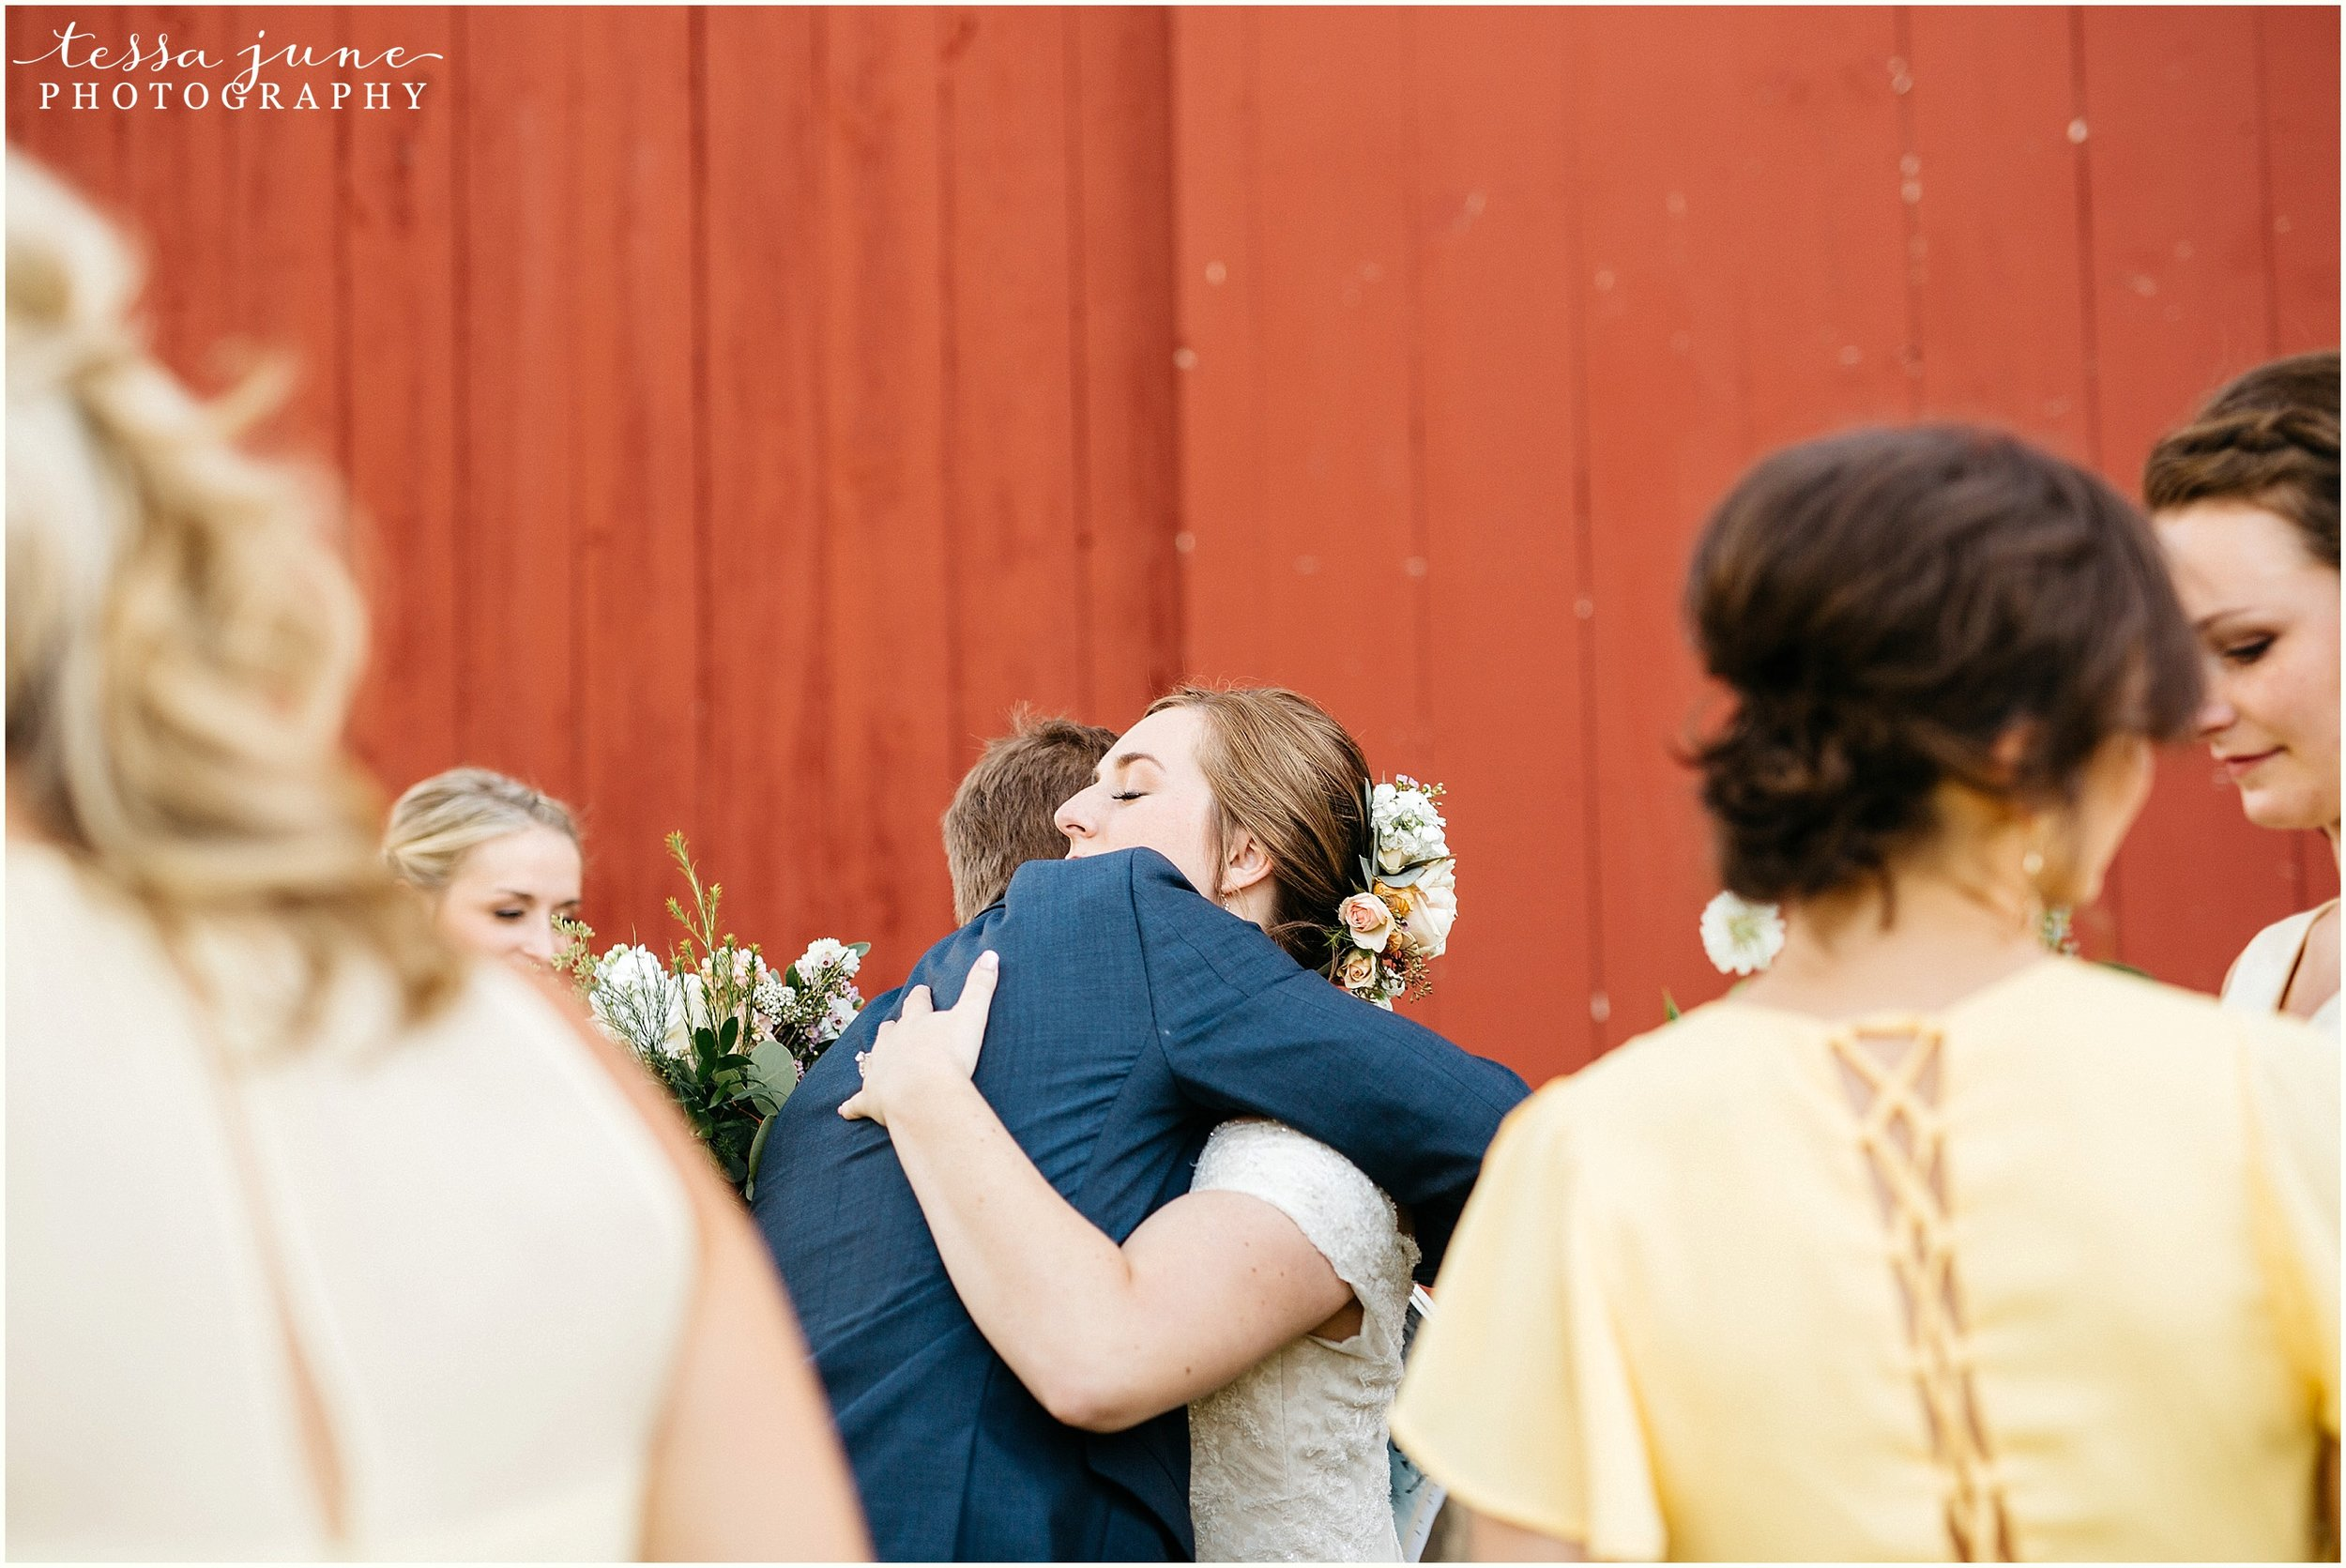 birch-hill-barn-glenwood-city-wisconsin-st-cloud-wedding-photographer-4626.jpg